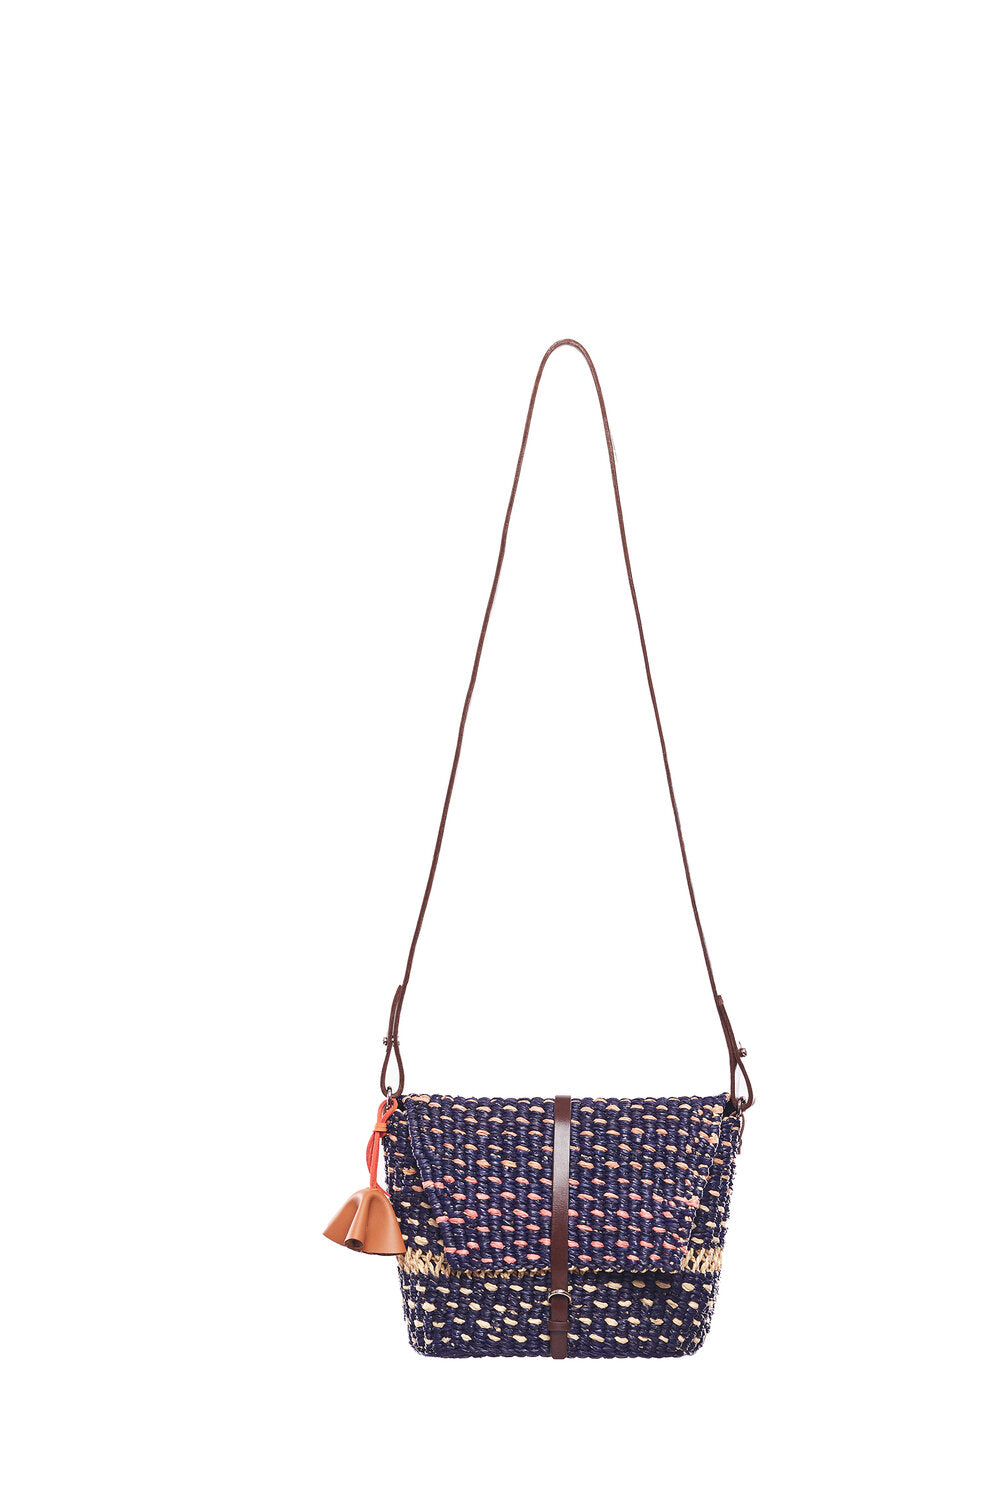 Sinsi Dot Bag - Only 1 left!